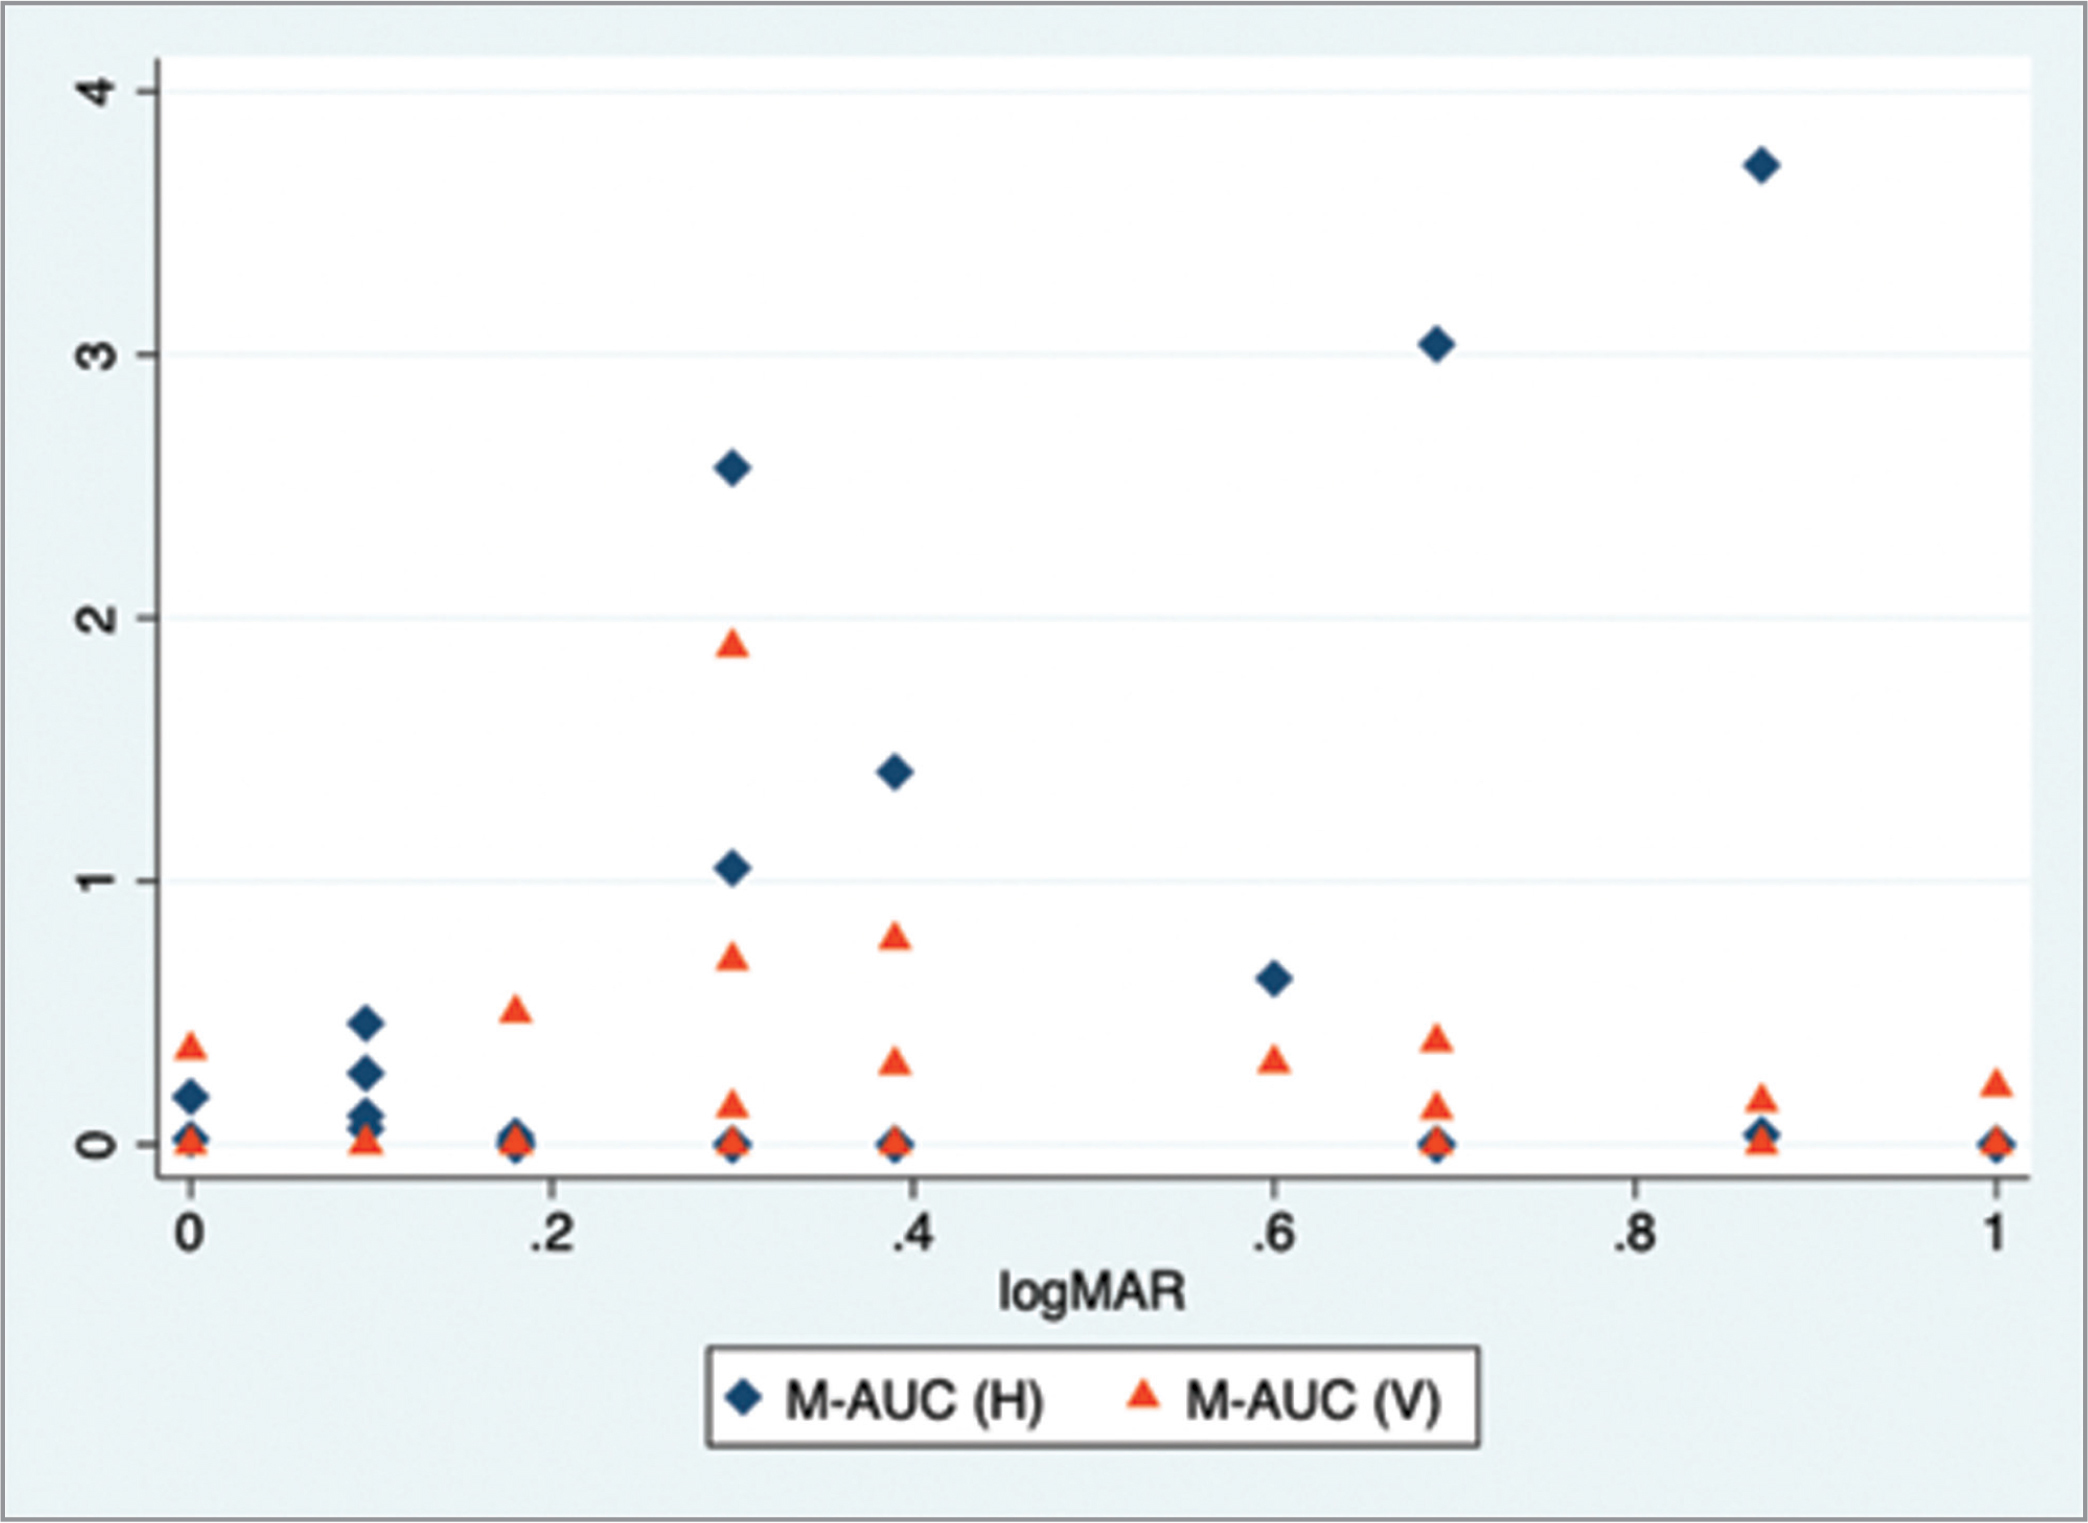 Scatterplot of vertical and horizontal manipulated area under the curve (M-AUC) versus logMAR visual acuity (VA). No significant relationship was found between subjects' VA and their M-AUC in either orientation. H = horizontal; V = vertical